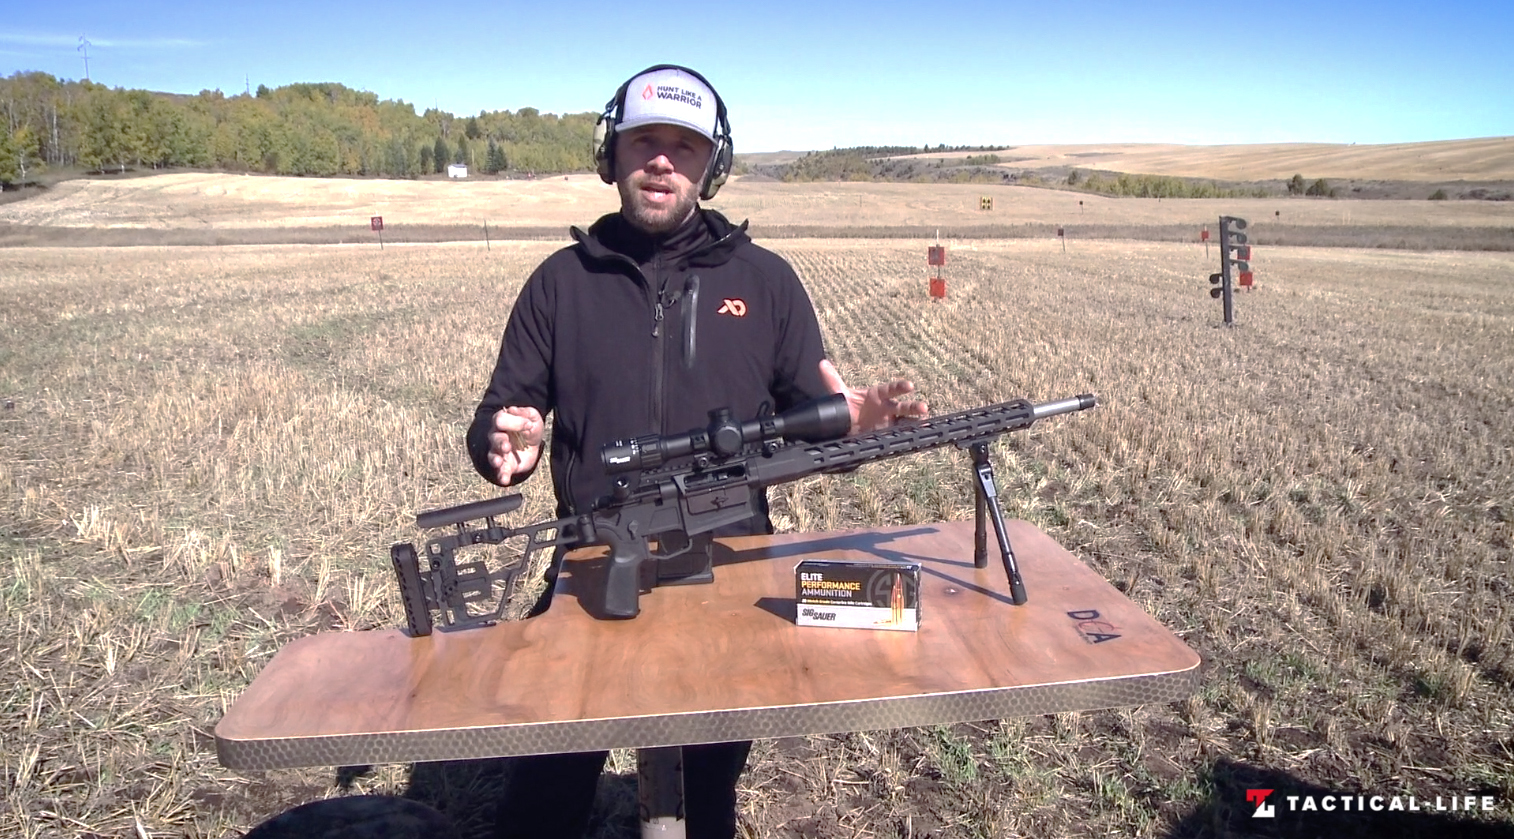 SIG Sauer Cross Bolt Action Rifle, SIG Cross Bolt Action Rifle, test